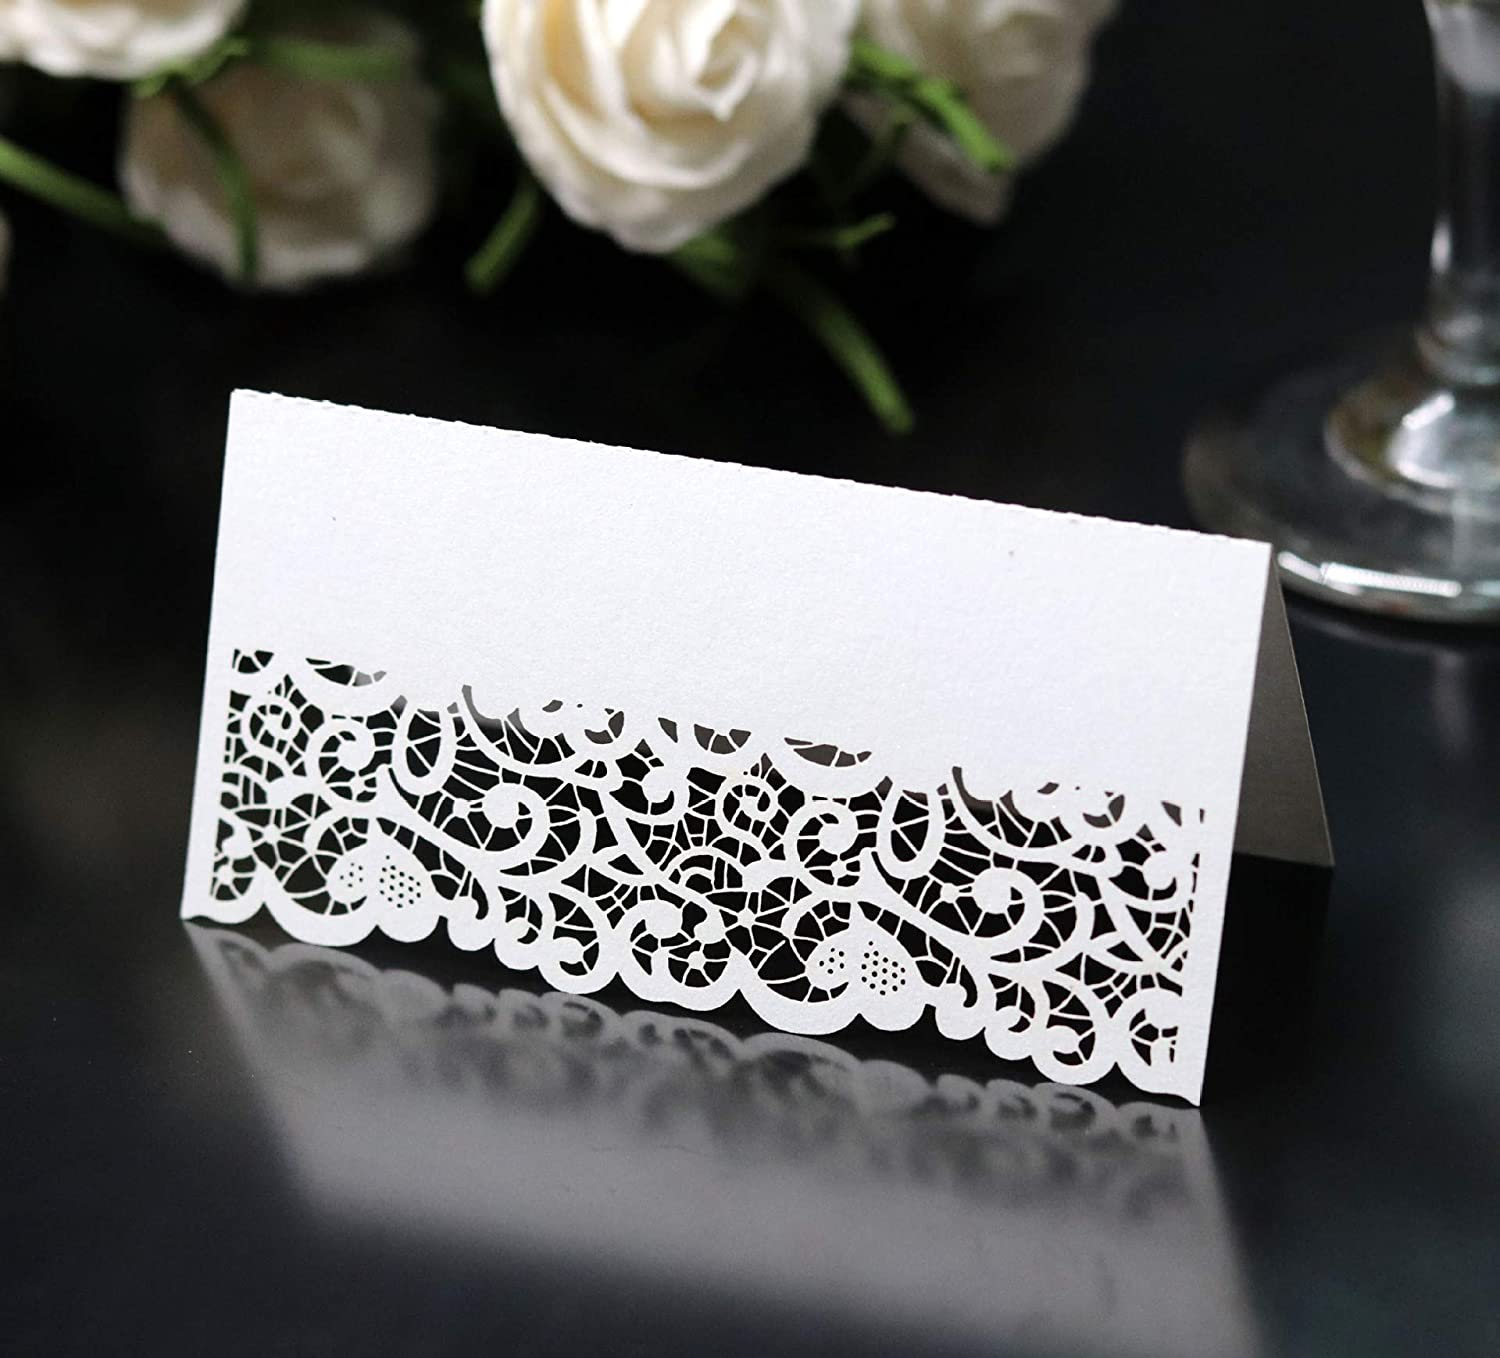 B07SKQPGNH Cozy Villa 25 Pack Table Tent Cards 3.9\'\' x 3.9\'\' White Place Name Cards with Laser Cut Border for Party and Event 71ugyt97zgL